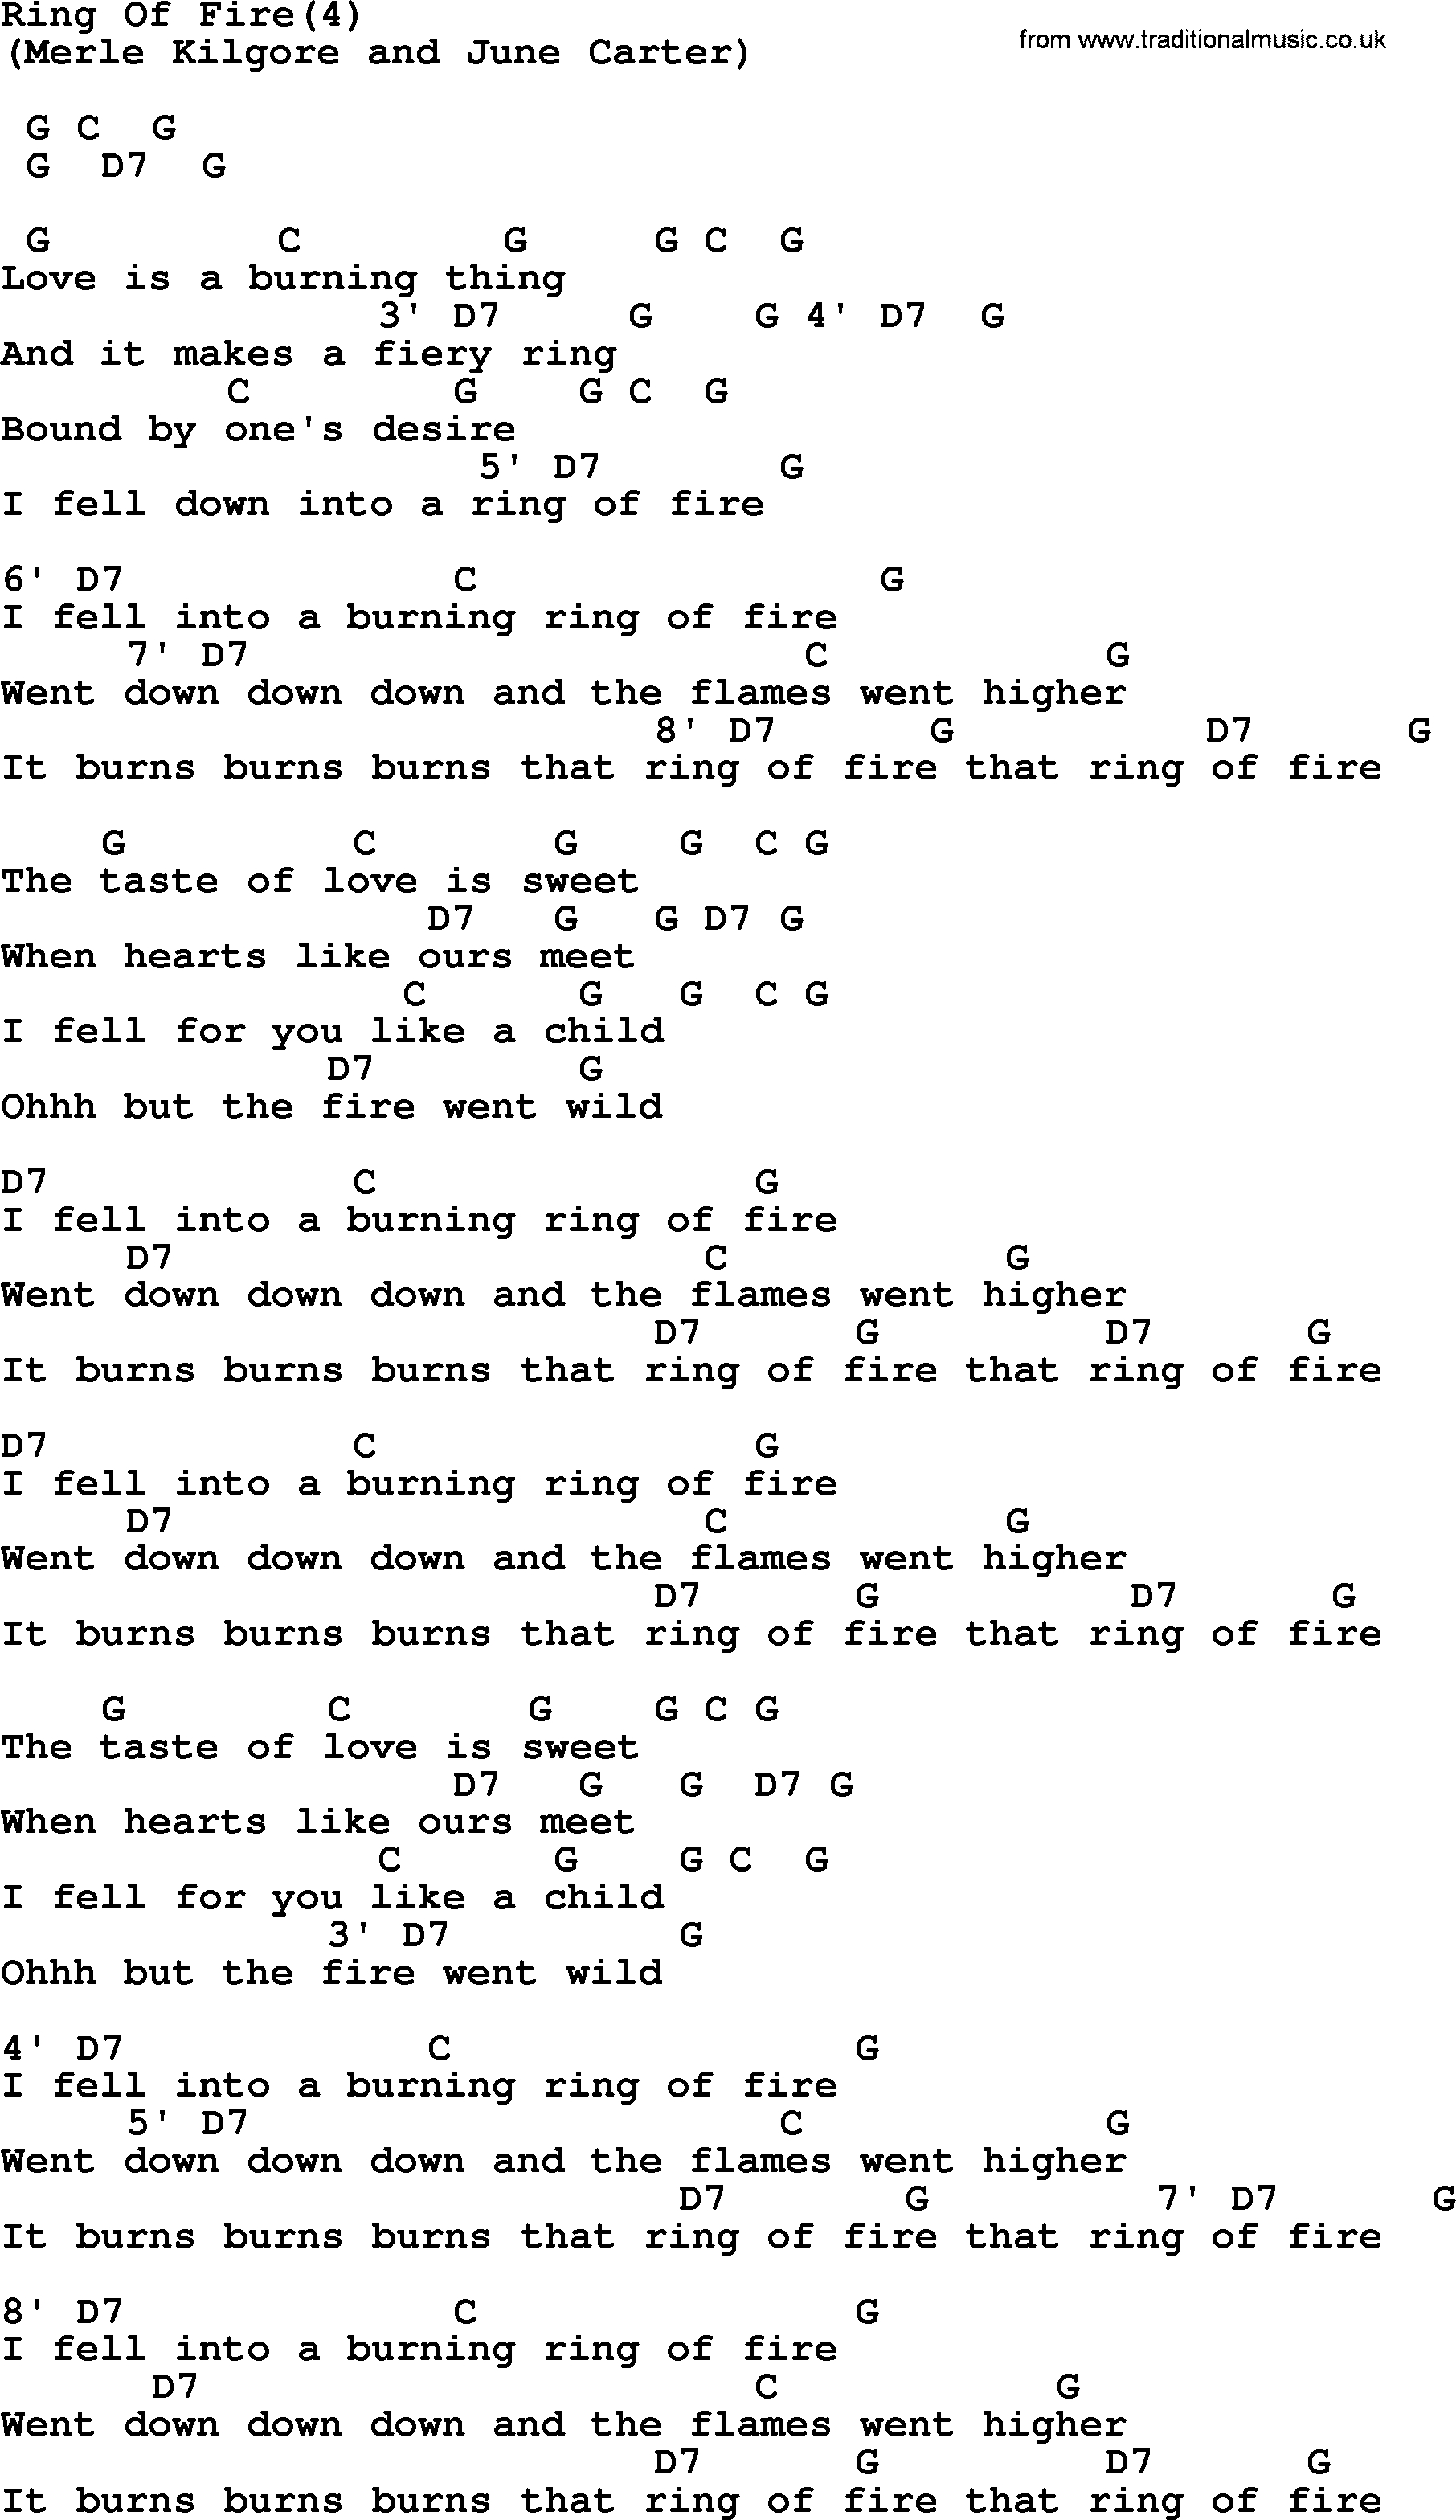 Ring Of Fire Chords Johnny Cash Song Ring Of Fire4 Lyrics And Chords